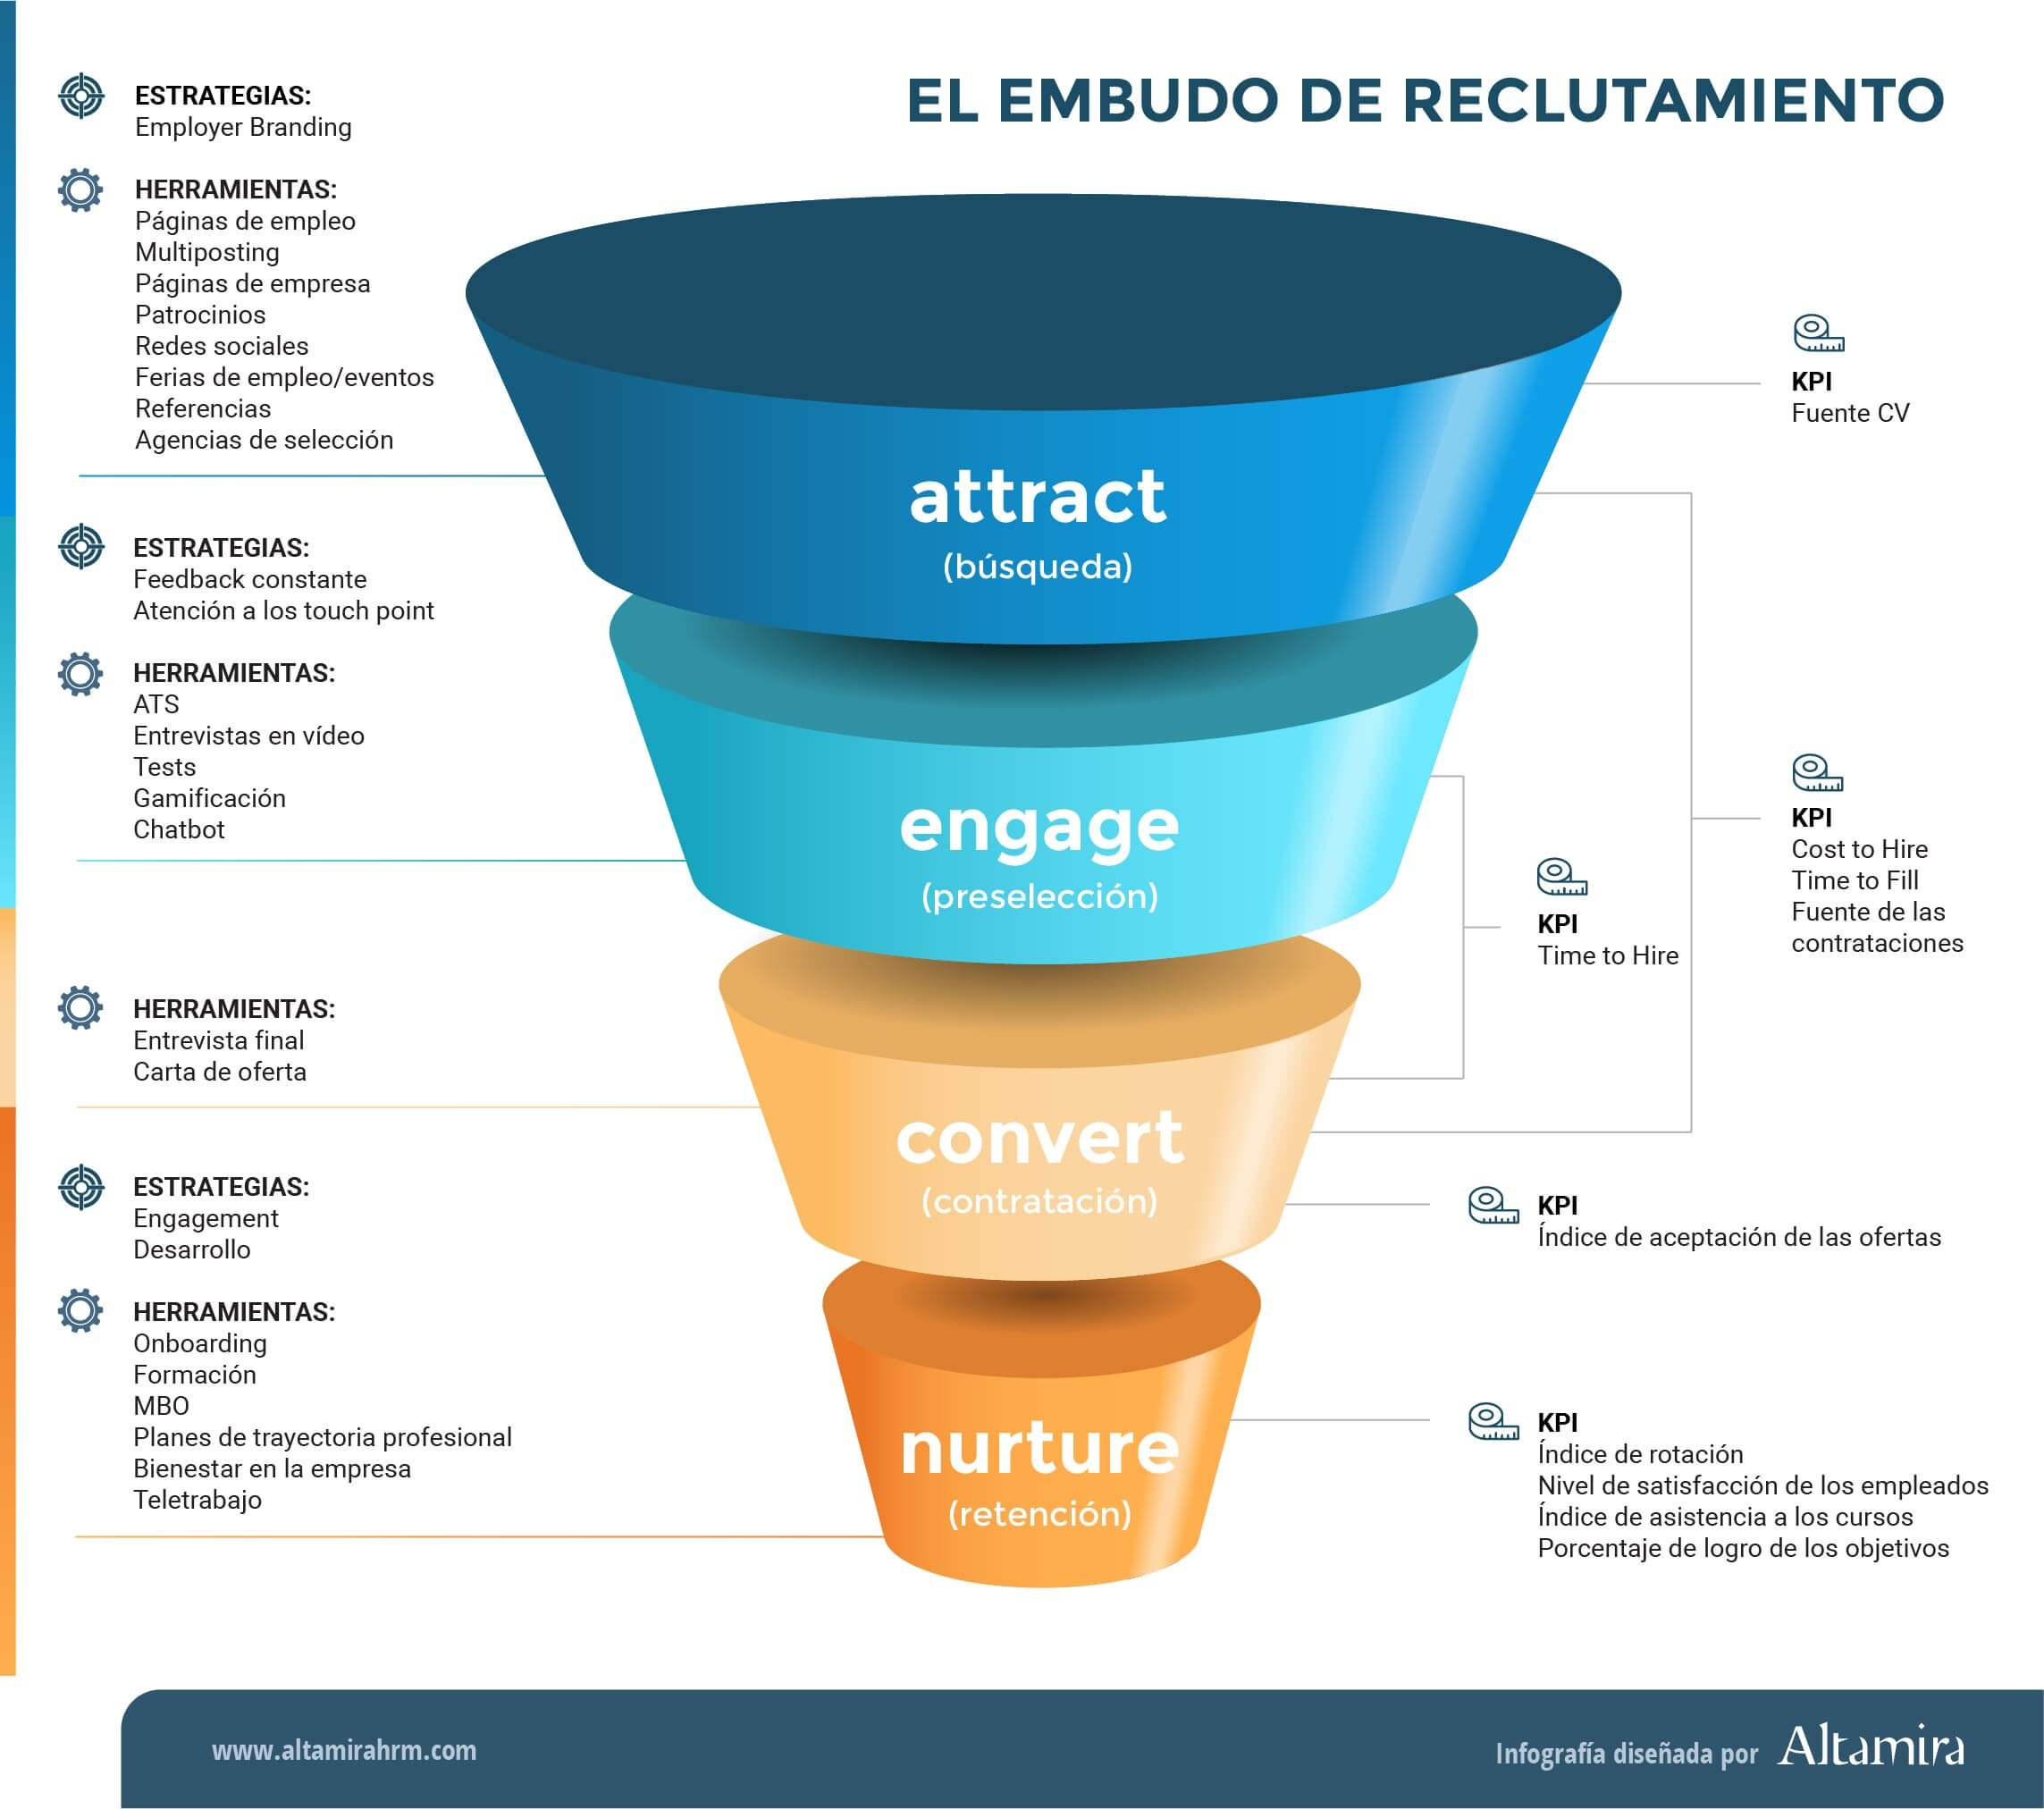 embudo de reclutamiento o recruiting funnel